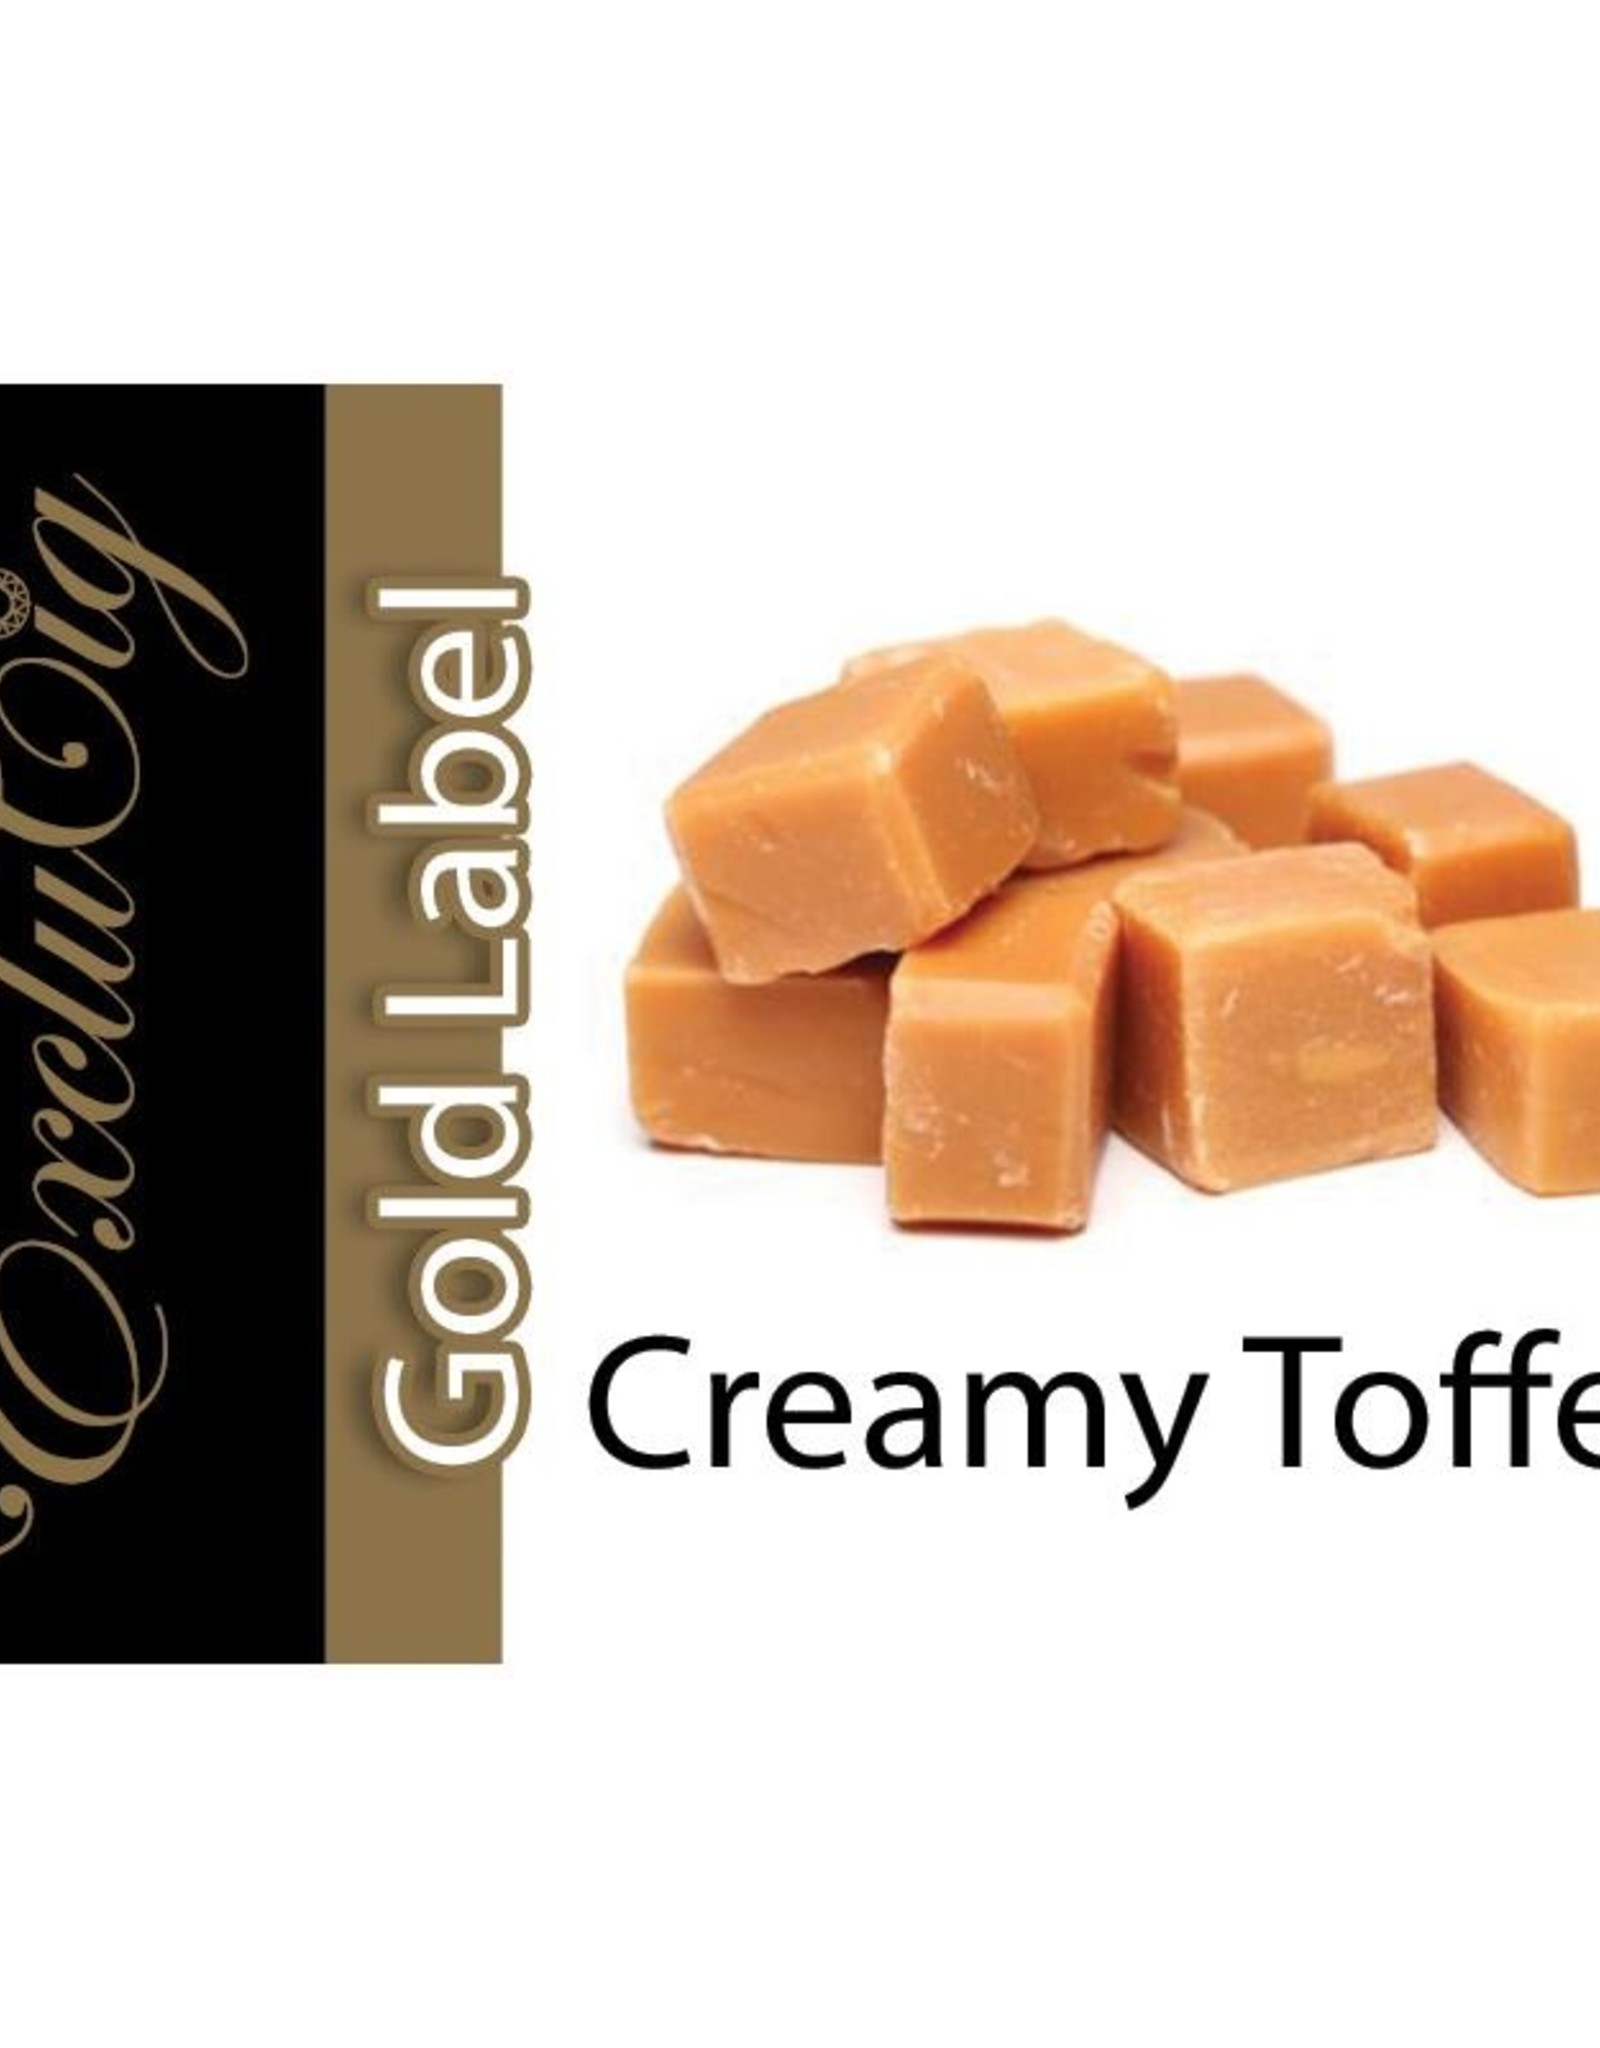 Exclucig Exclucig Gold Label E-liquid Creamy Toffee 3 mg Nicotine